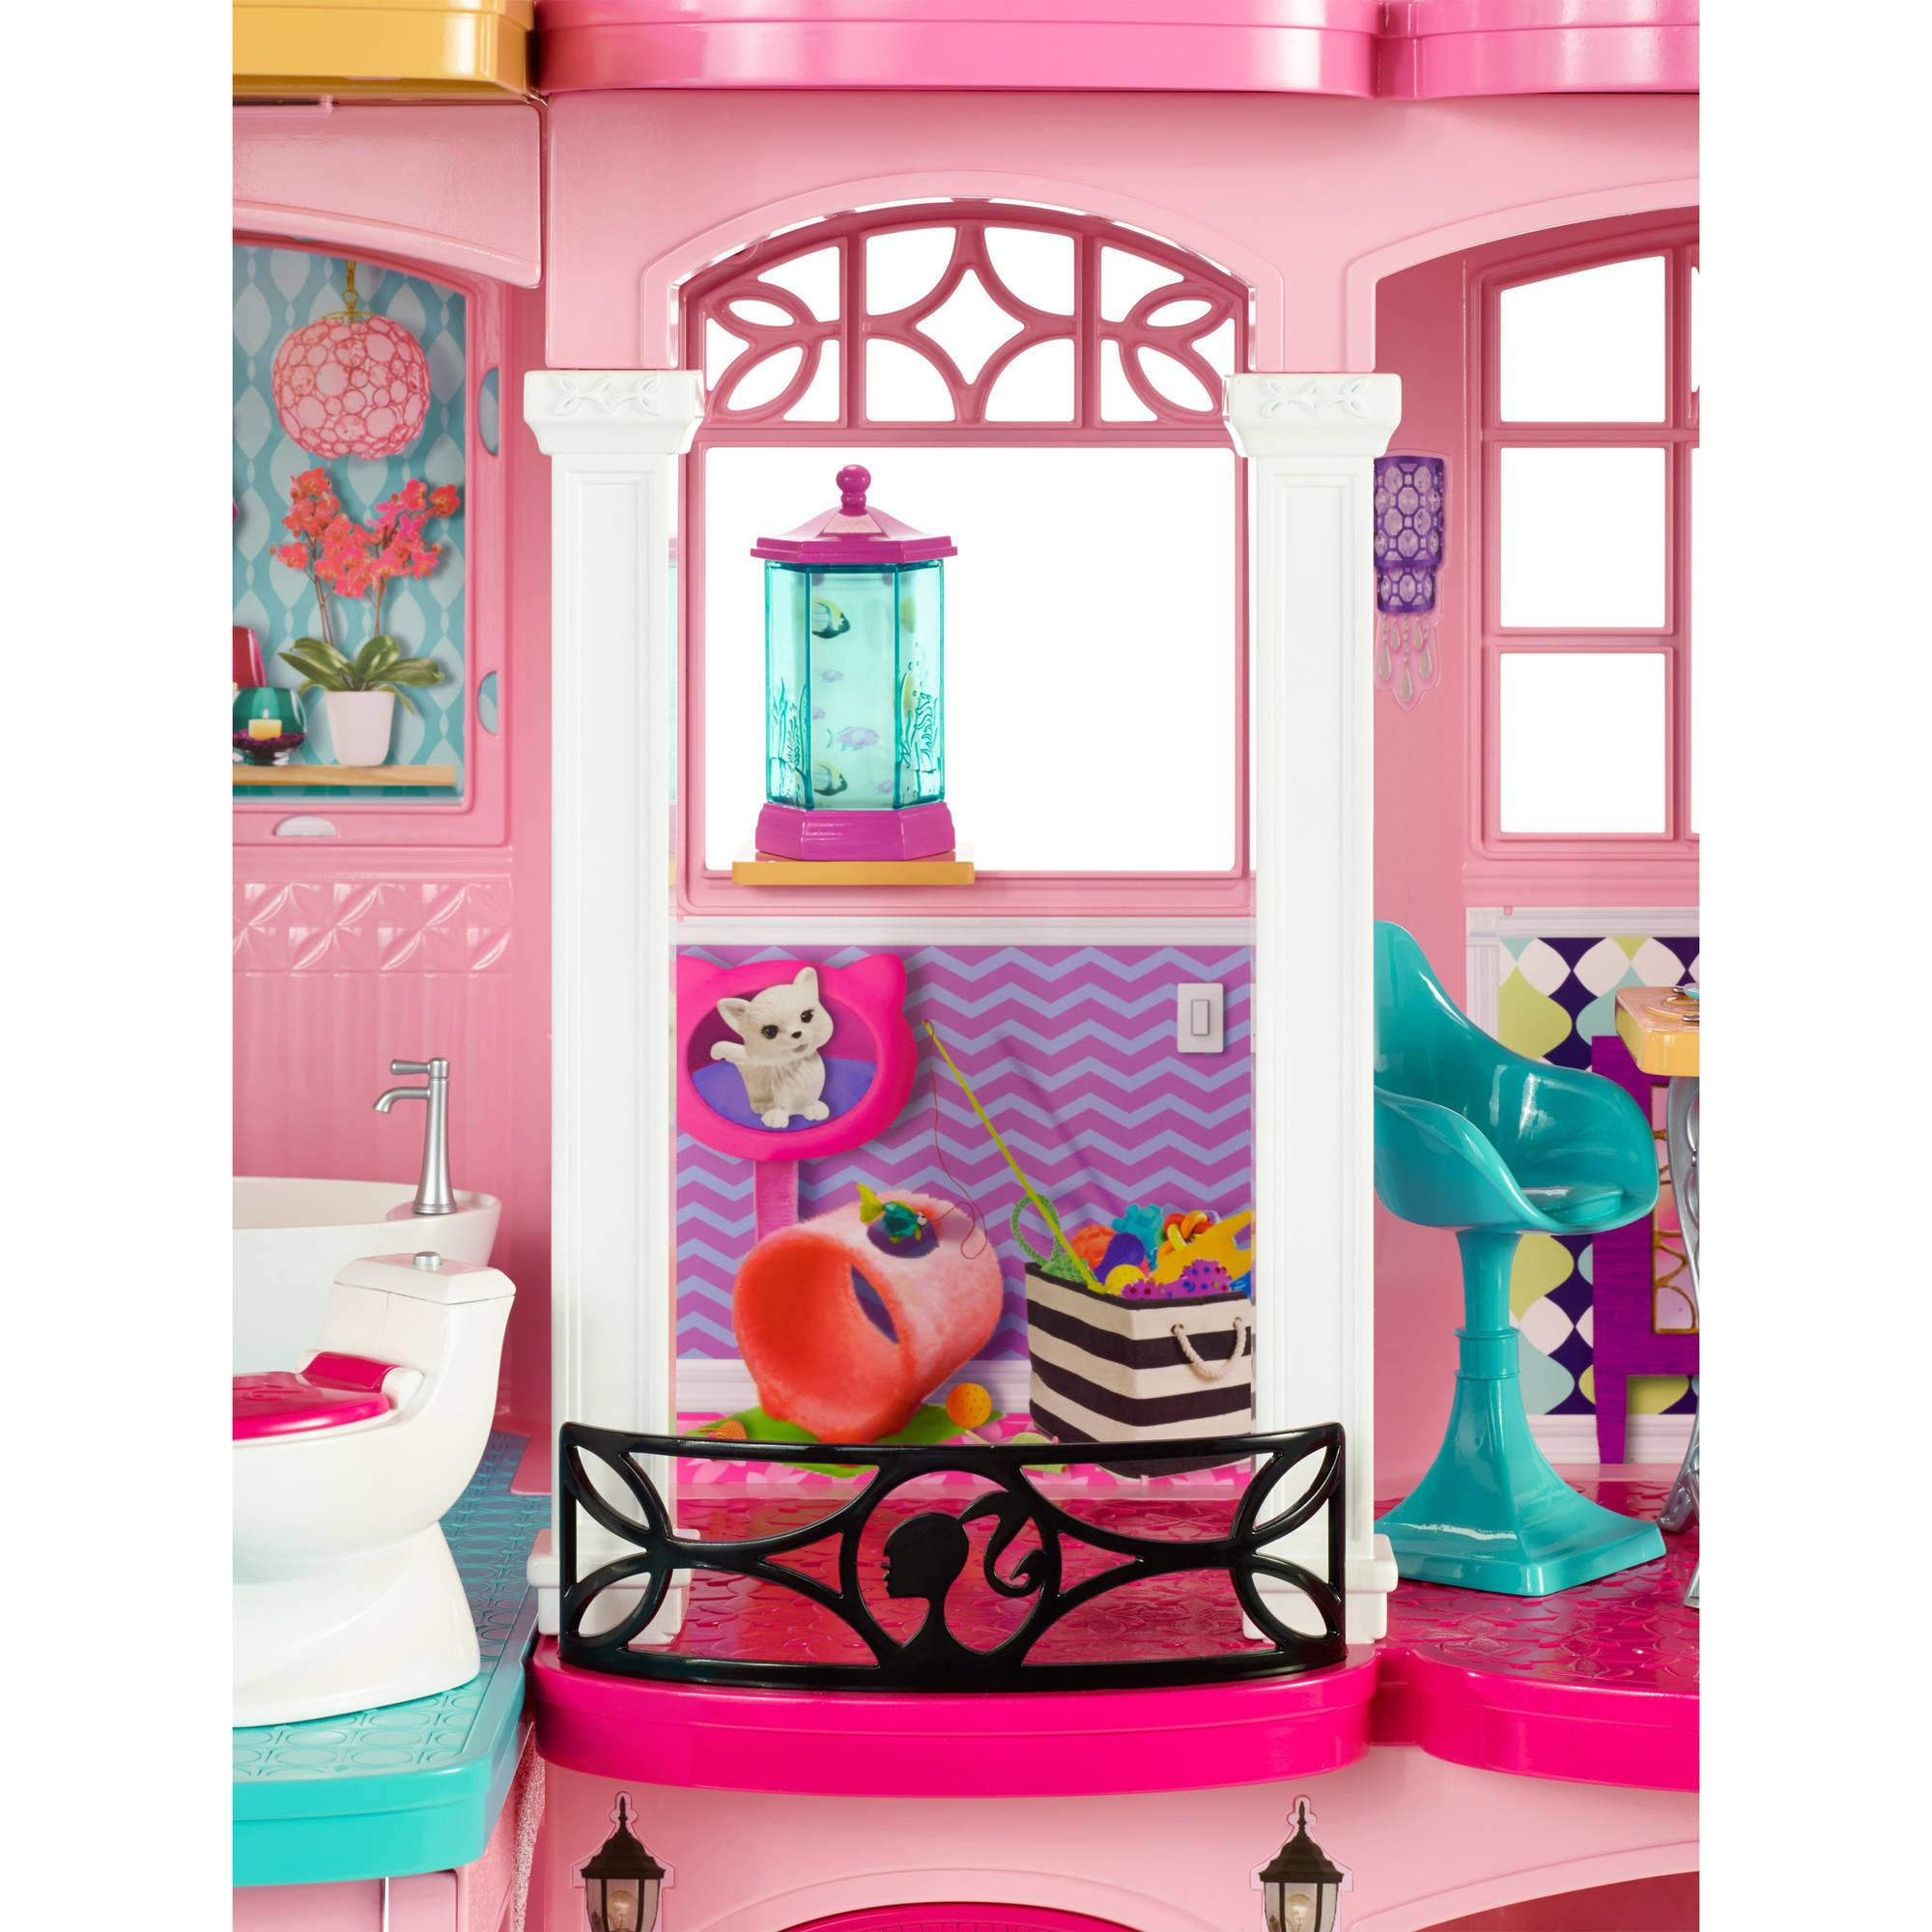 Compact yet luxurious dream home for a pink loving fashionista for Dream house days furniture